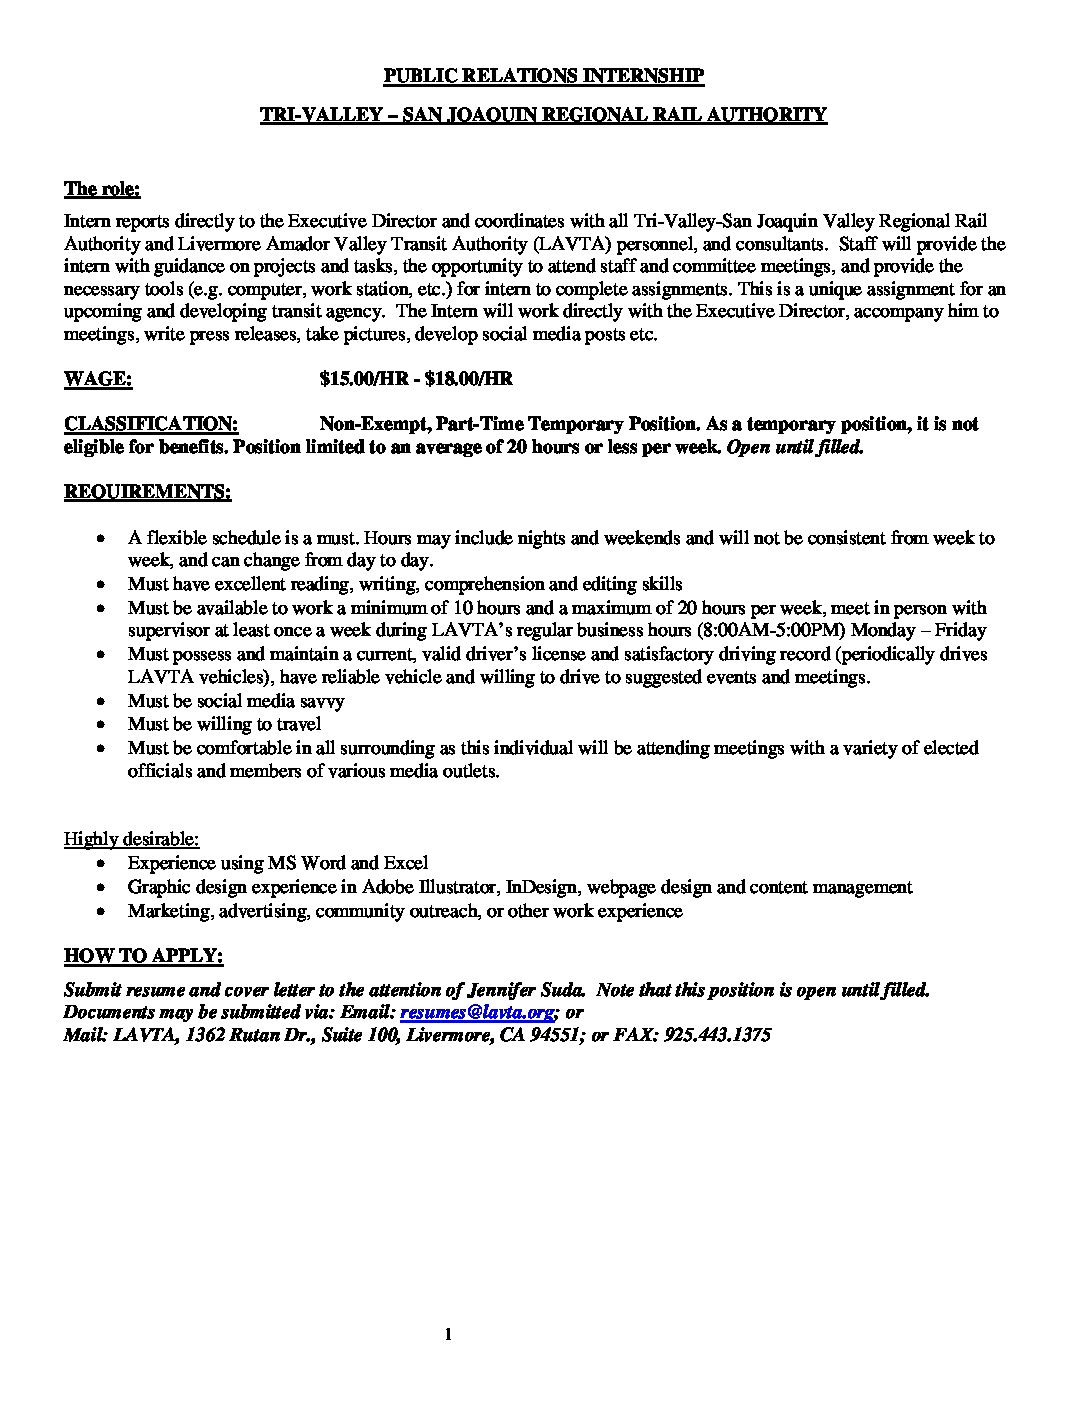 Public Relations Intern Job Description |